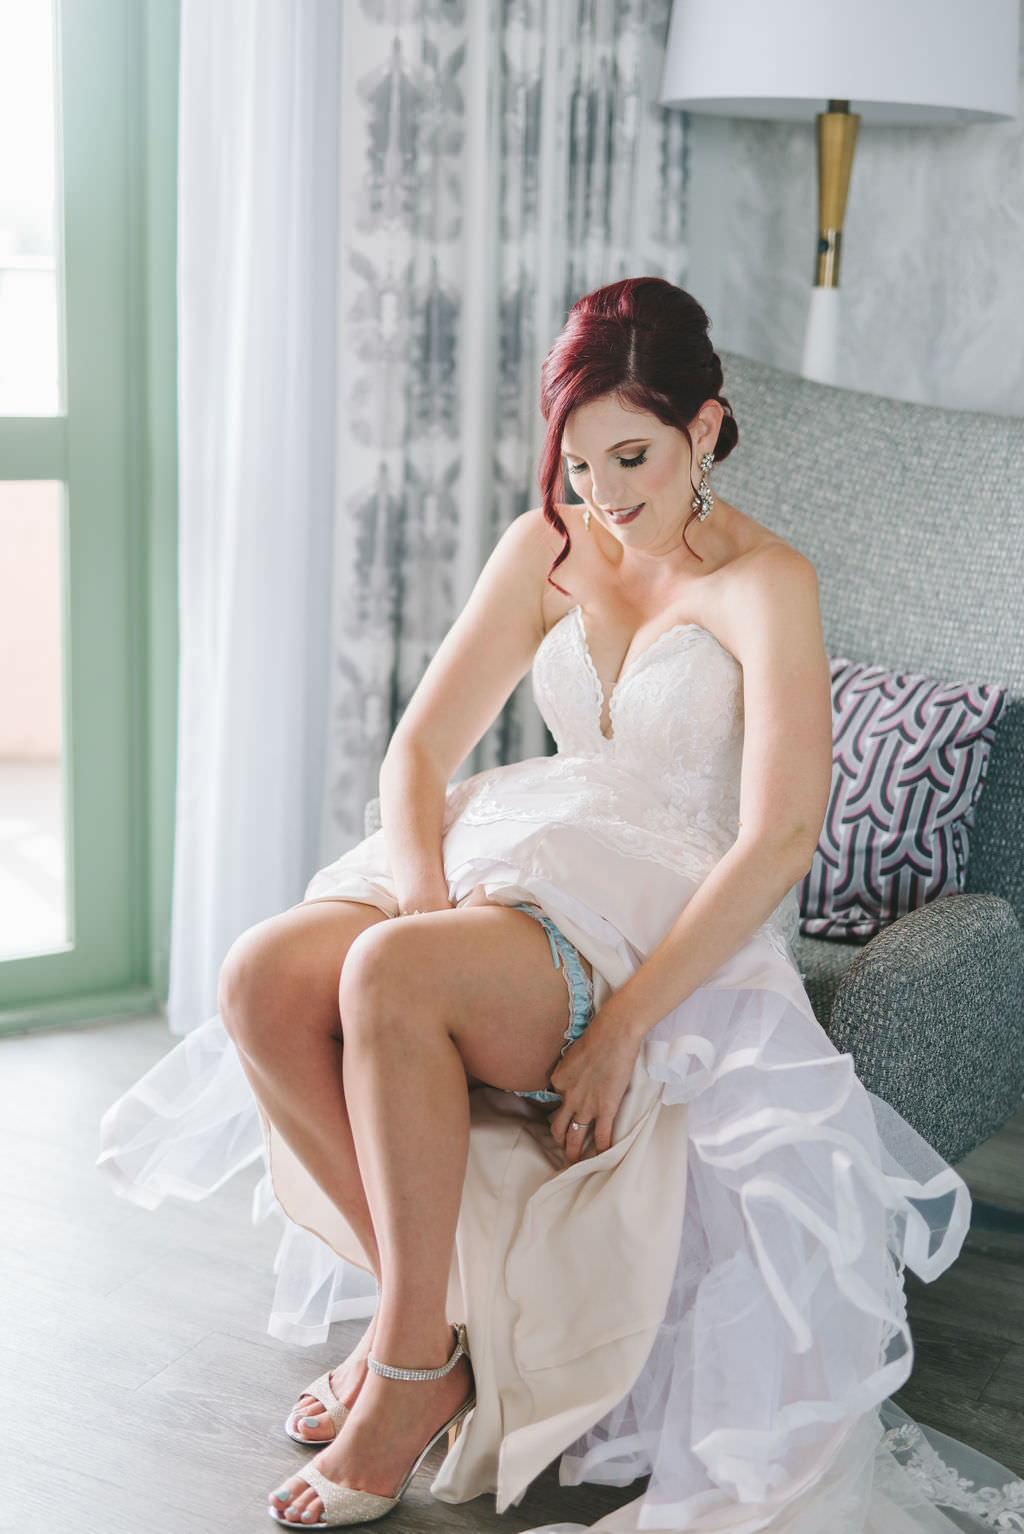 Tampa Bay Bride Getting Ready Wedding Portrait Putting on Something Blue Garter, Champagne Gold Nude Sandal Wedding Heel Shoes in Strapless Sweetheart Fit and Flare Formal Classic Lace Stella York Wedding Dress   Wedding Photographer Kera Photography   Destiny and Light Hair and Makeup Group